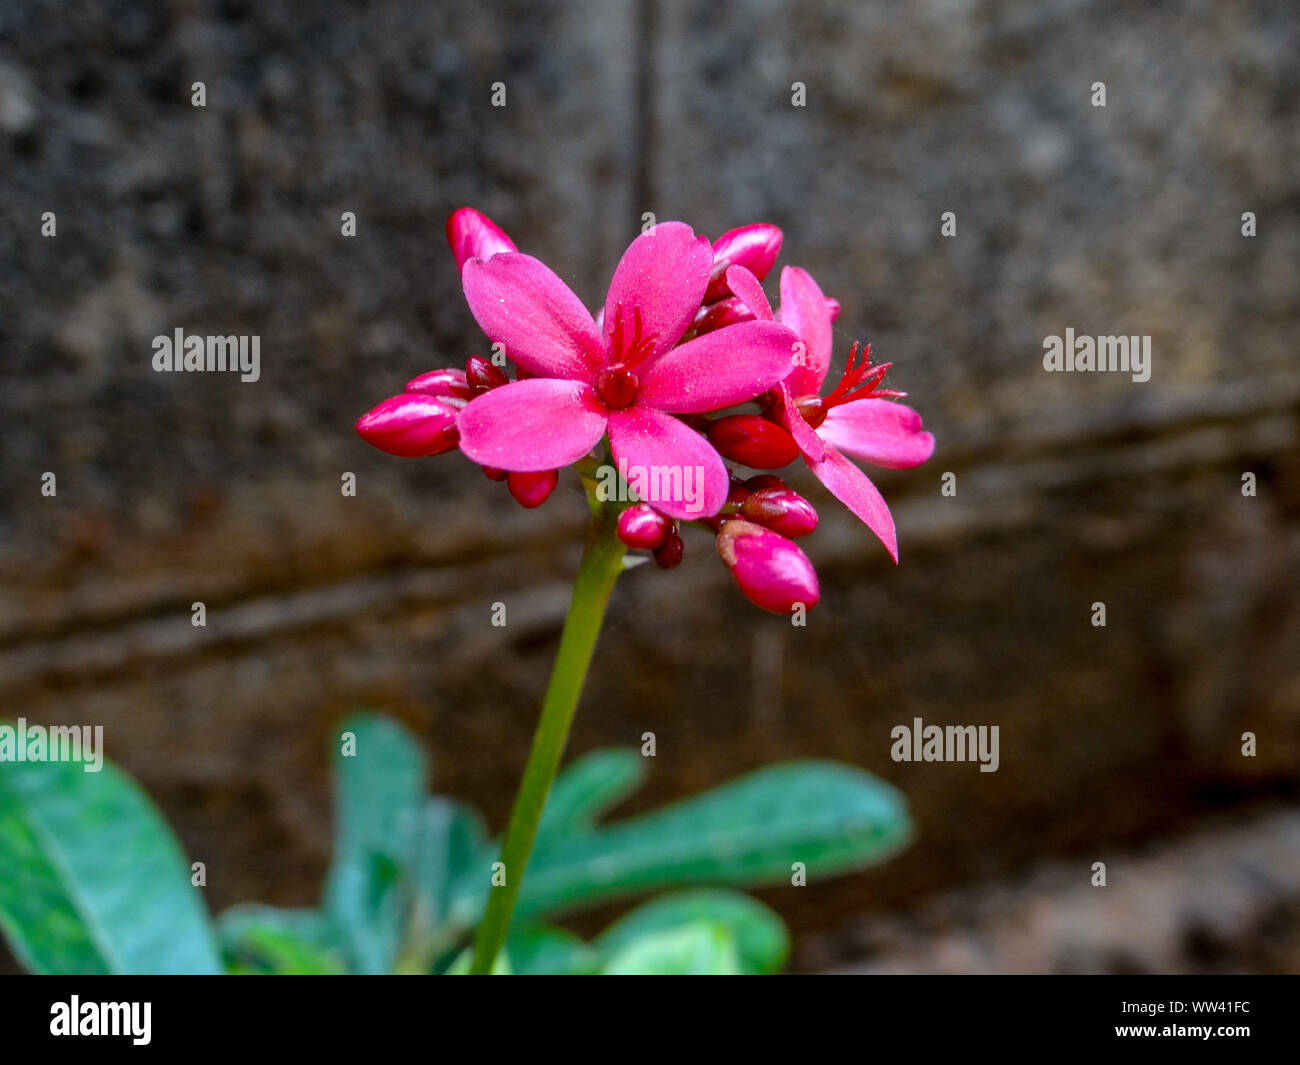 TINY RED FLOWERS Stock Photo